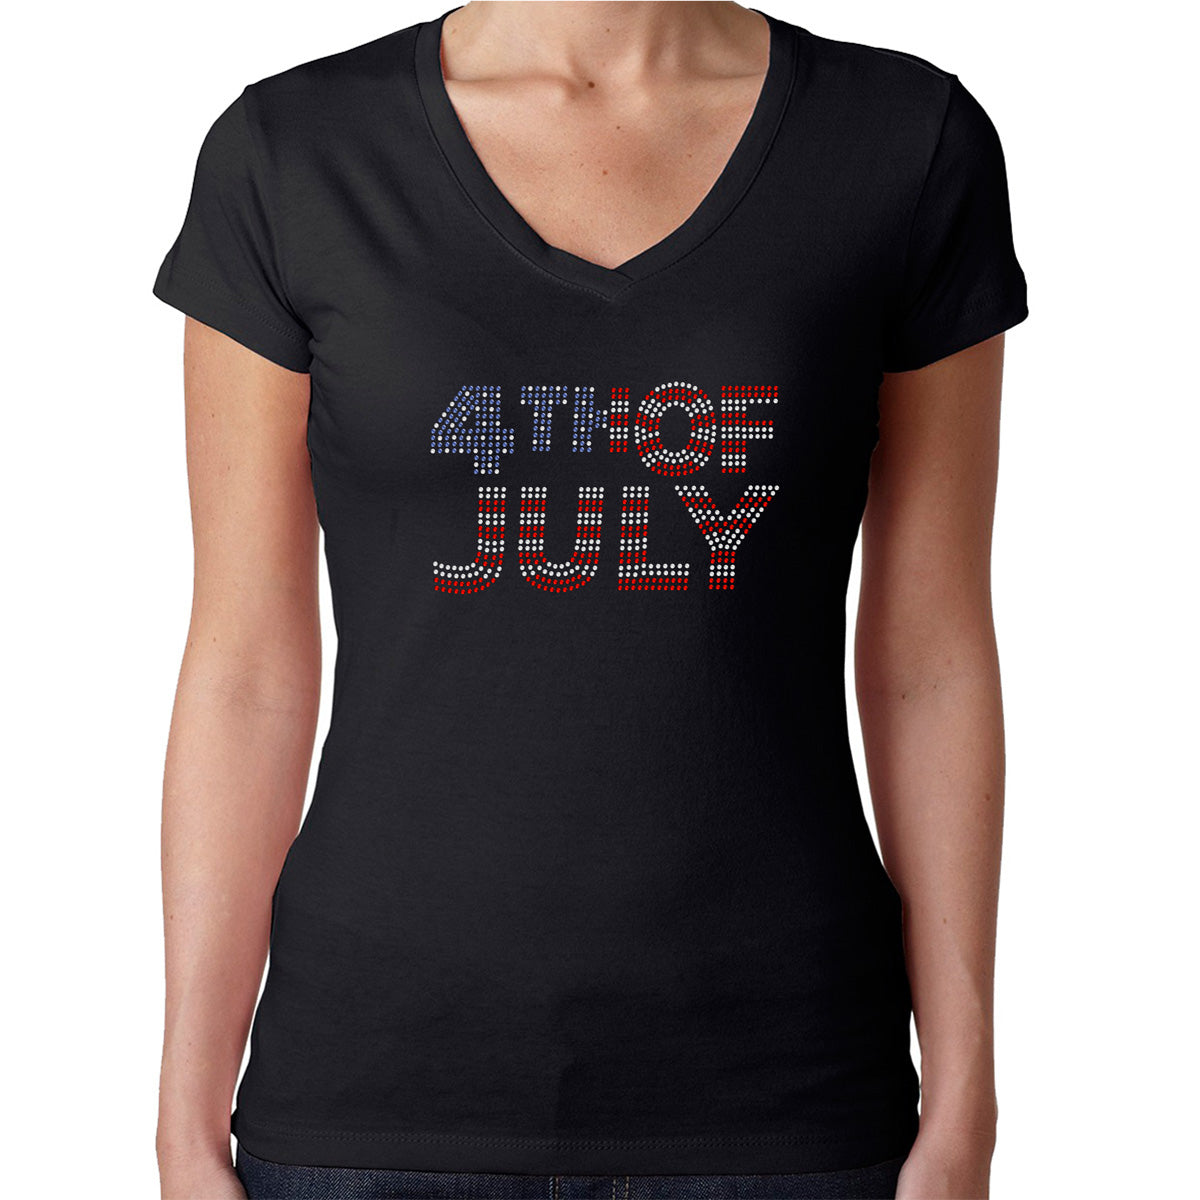 Womens T-Shirt Rhinestone Bling Black Fitted Tee 4th of July Flag Red White Blue